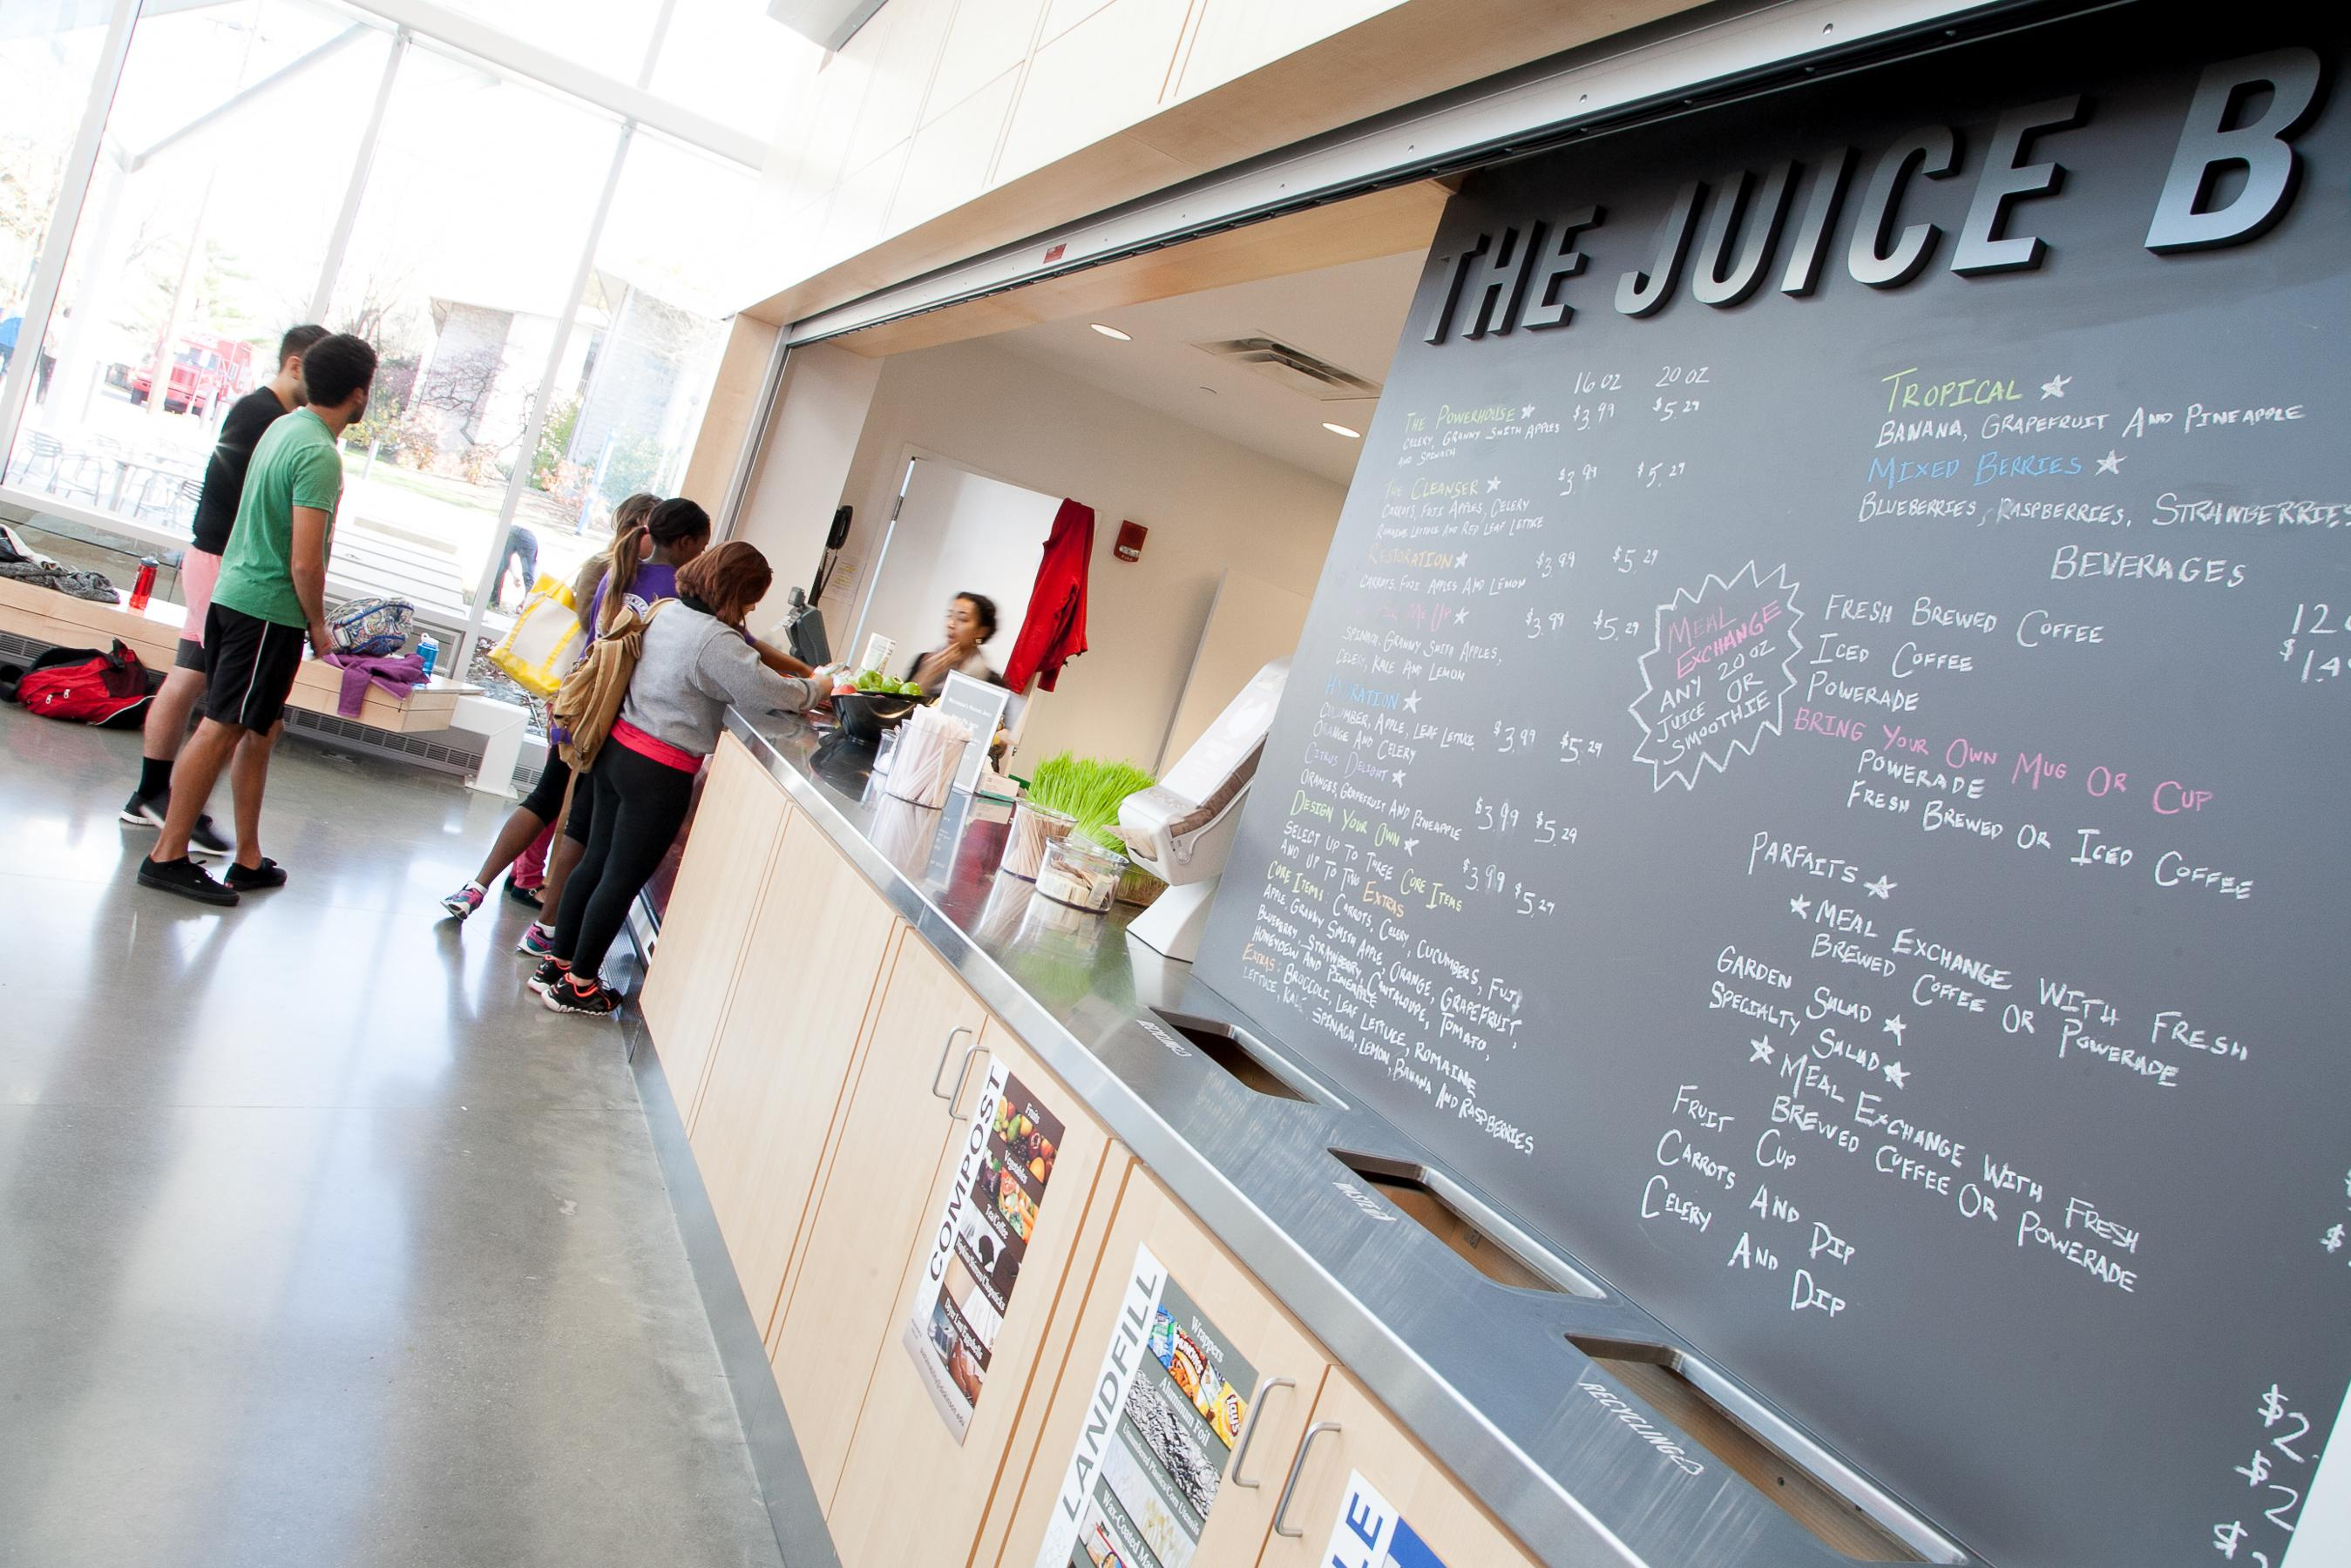 Juice Box restaurant photo